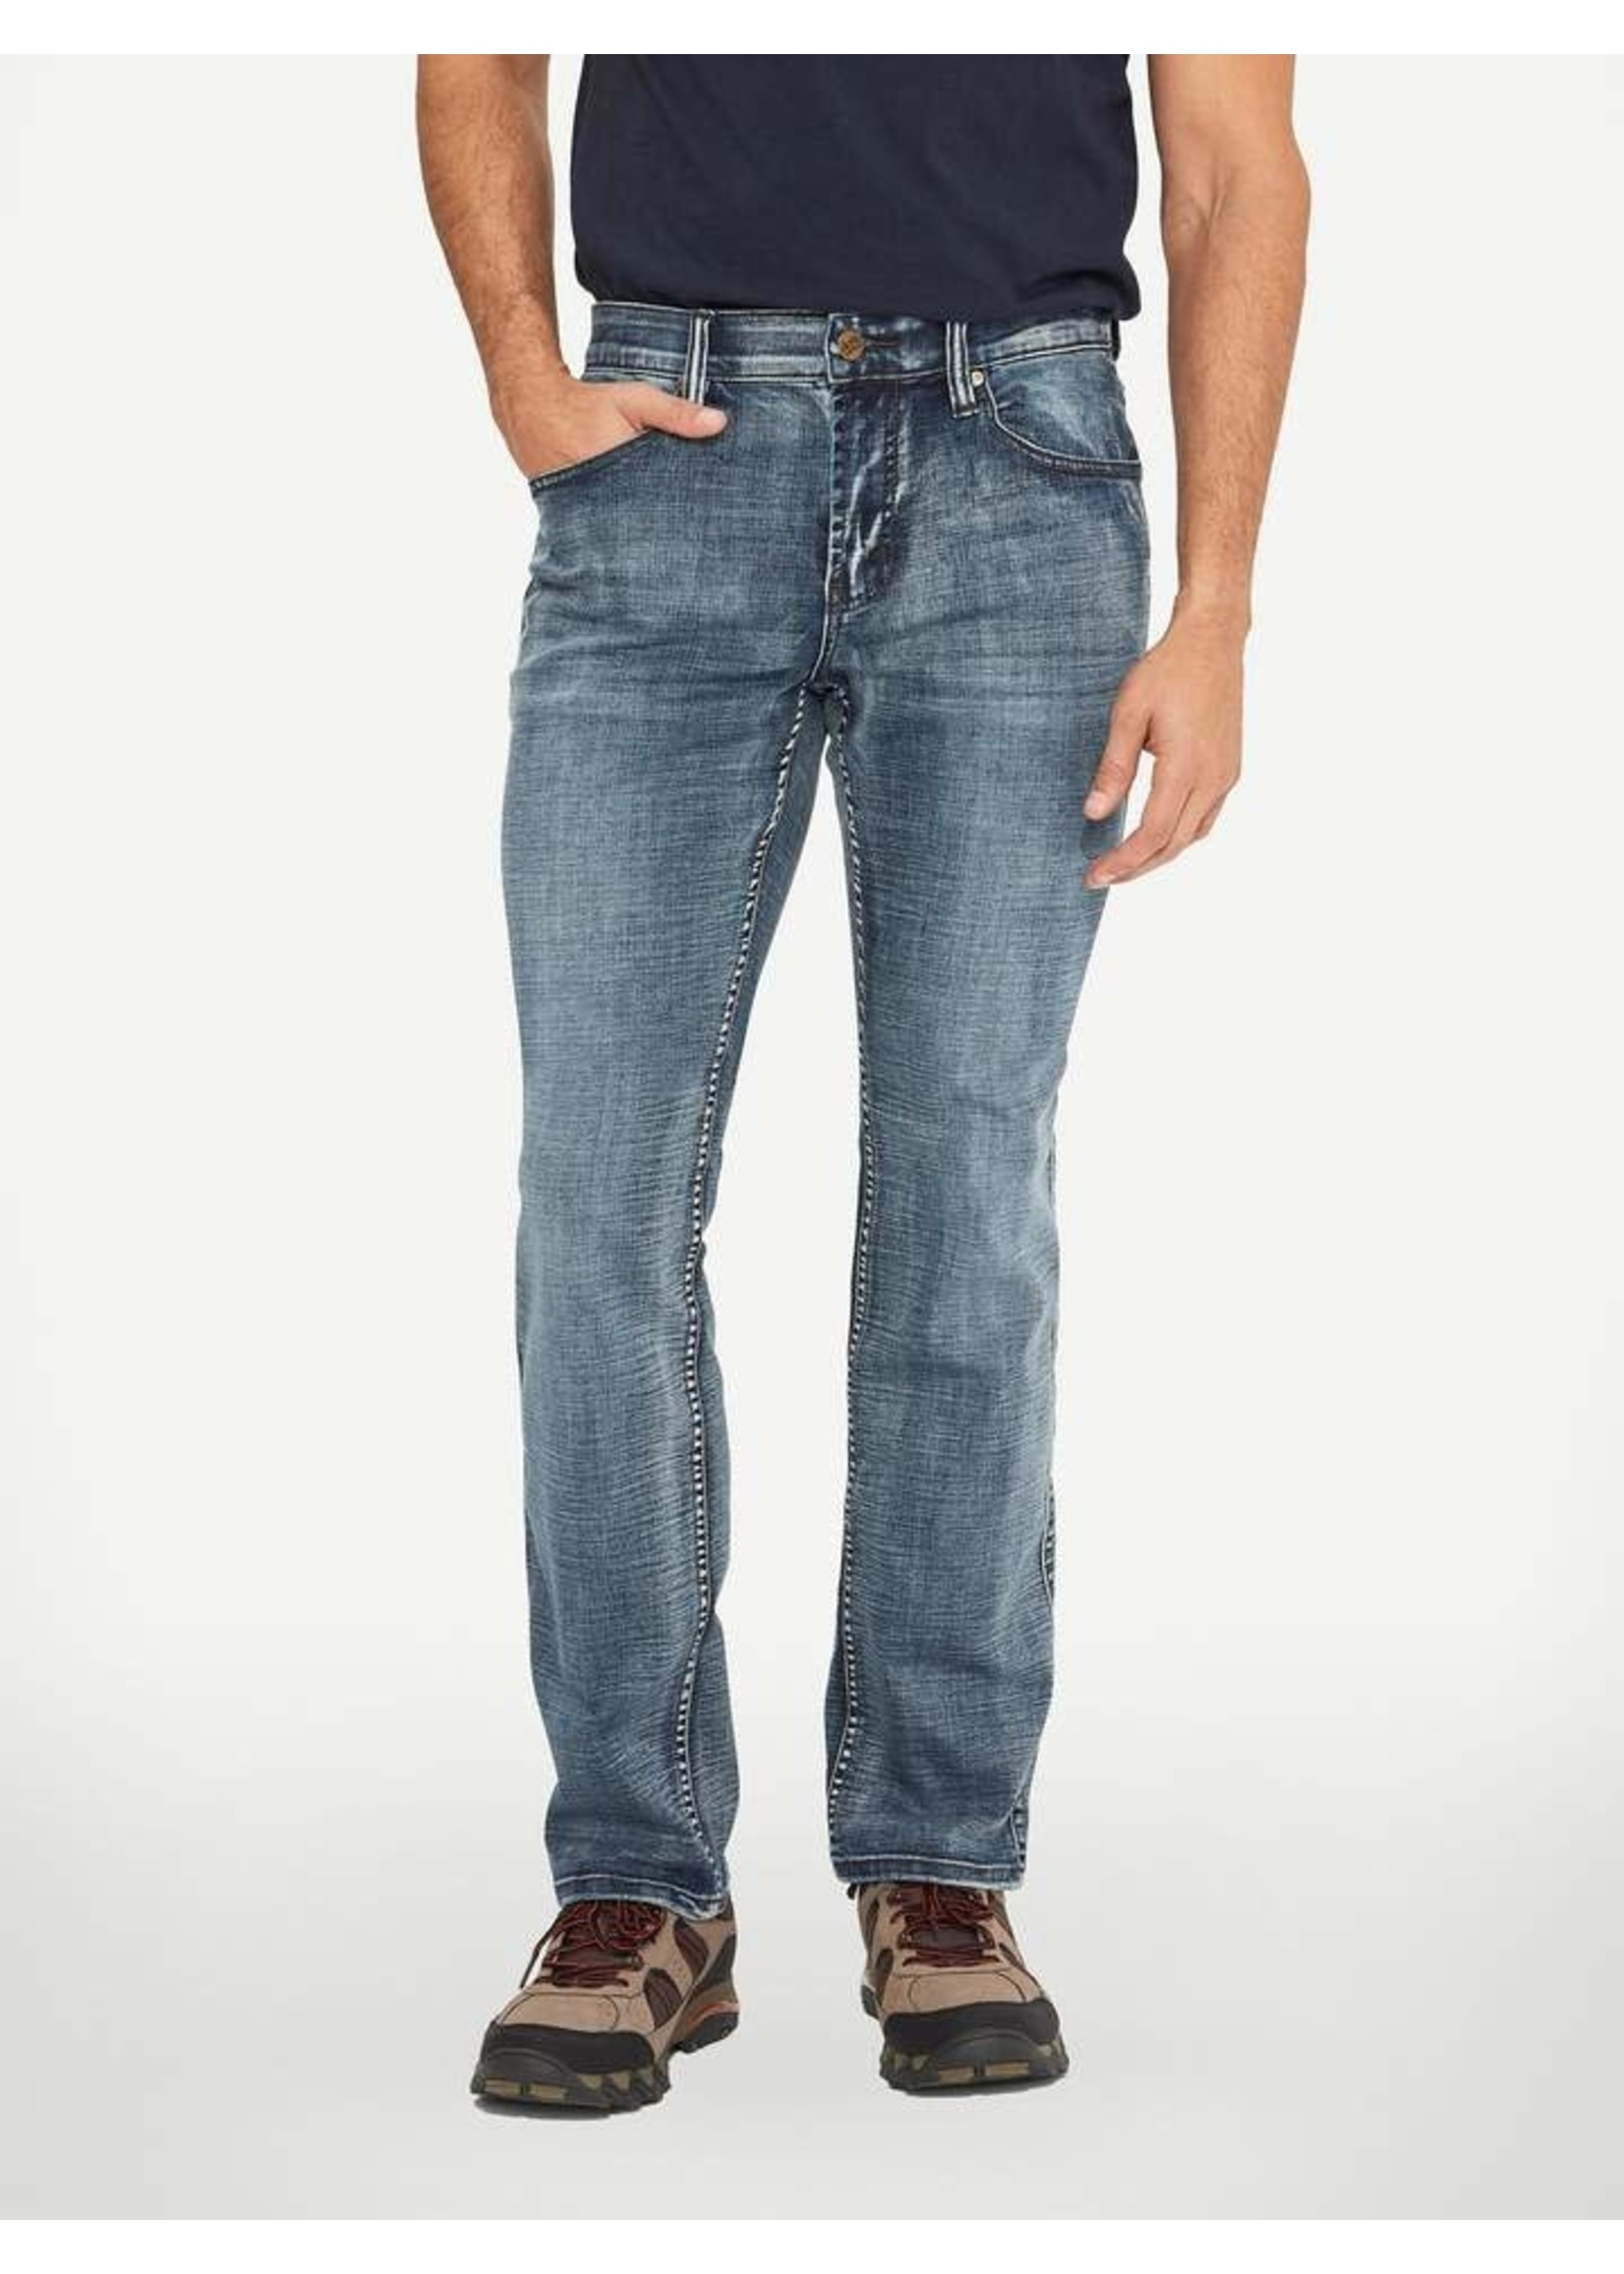 """Lois Jeans Canada The """"Brad Slim 6254"""" by Lois Jeans"""